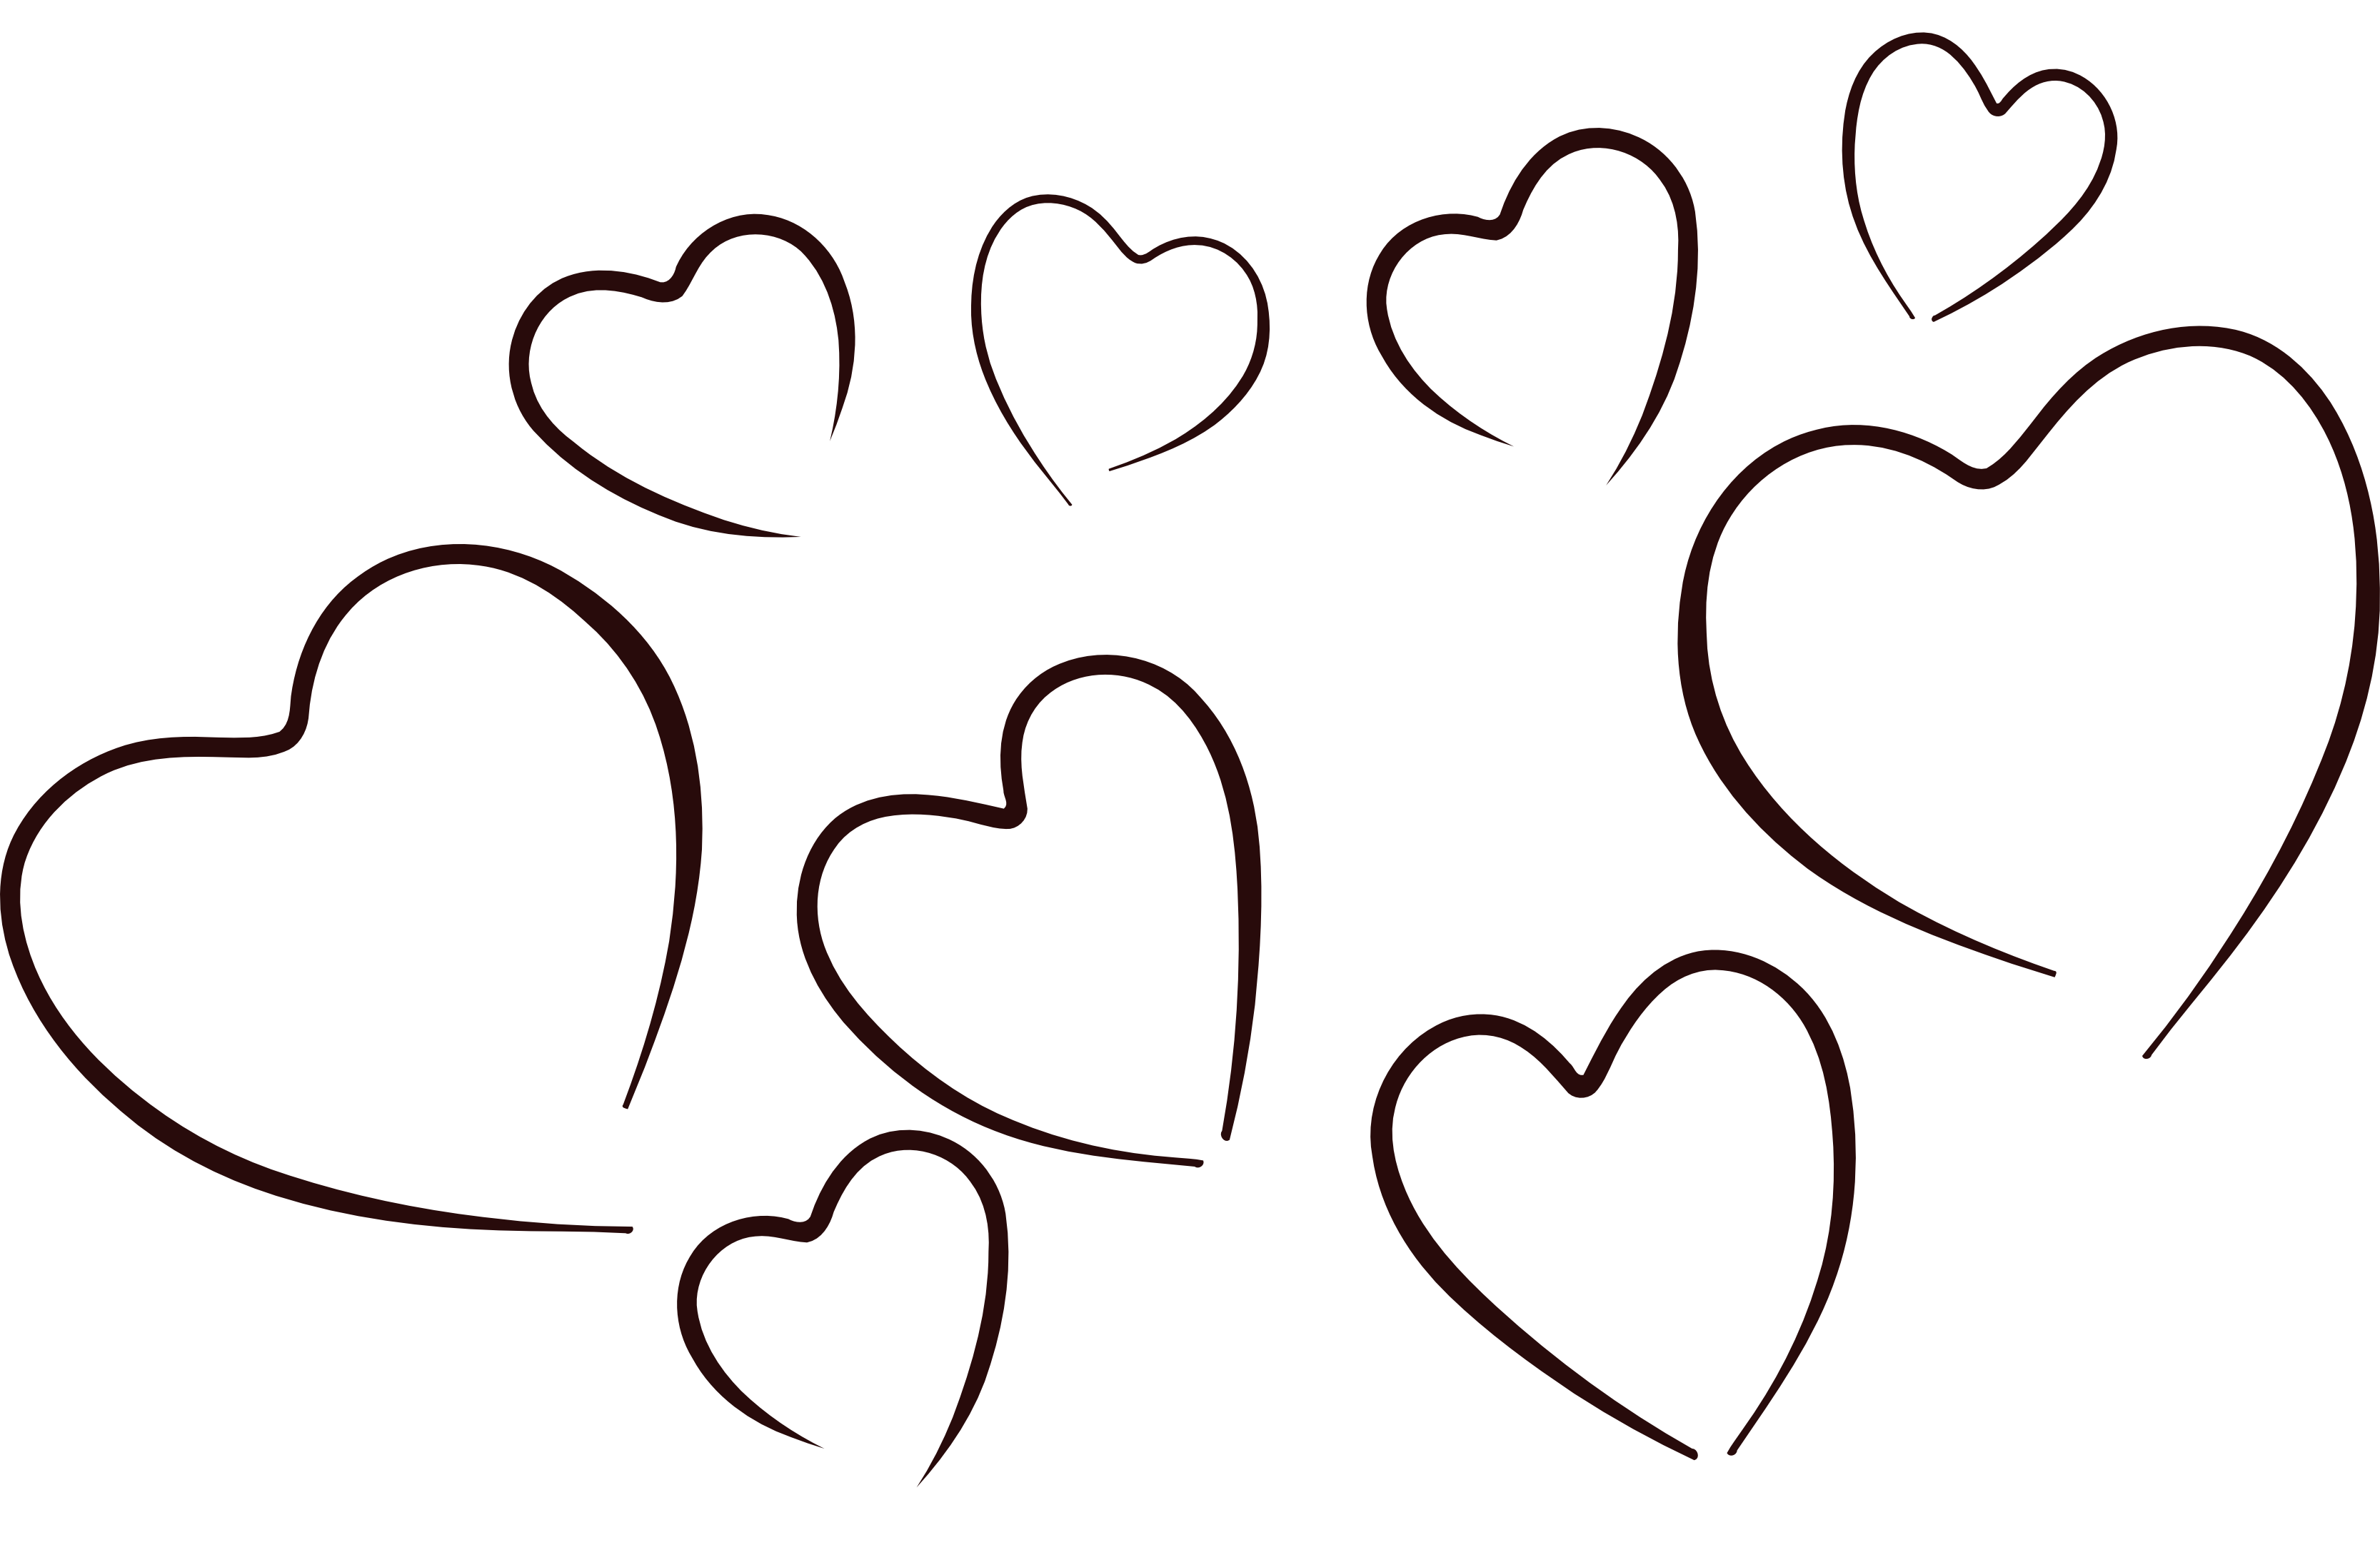 Black And White Pictures Of Hearts - ClipArt Best